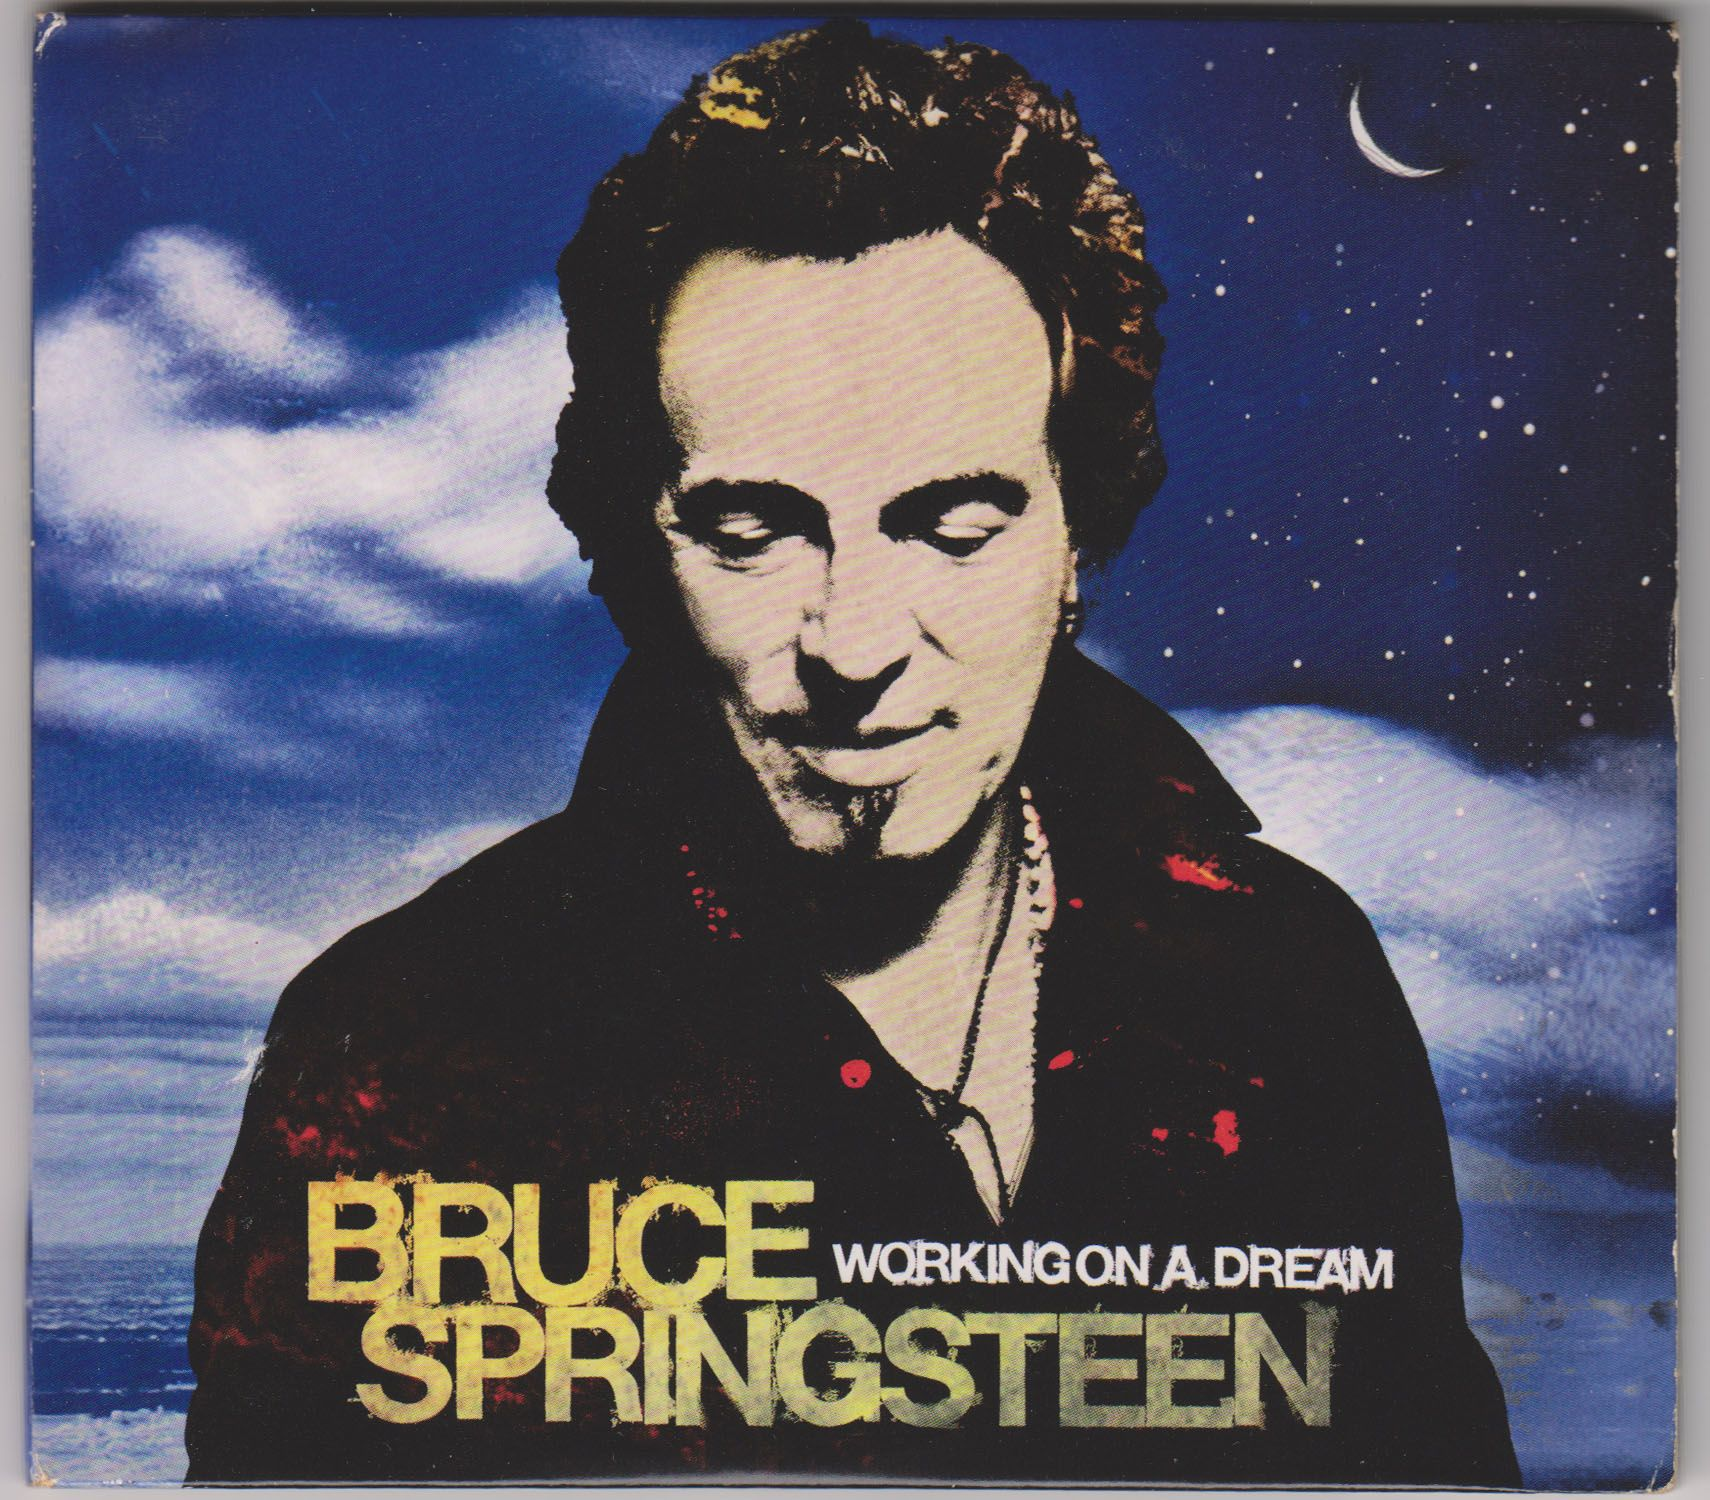 Bruce Springsteen - Working On A Dream album cover